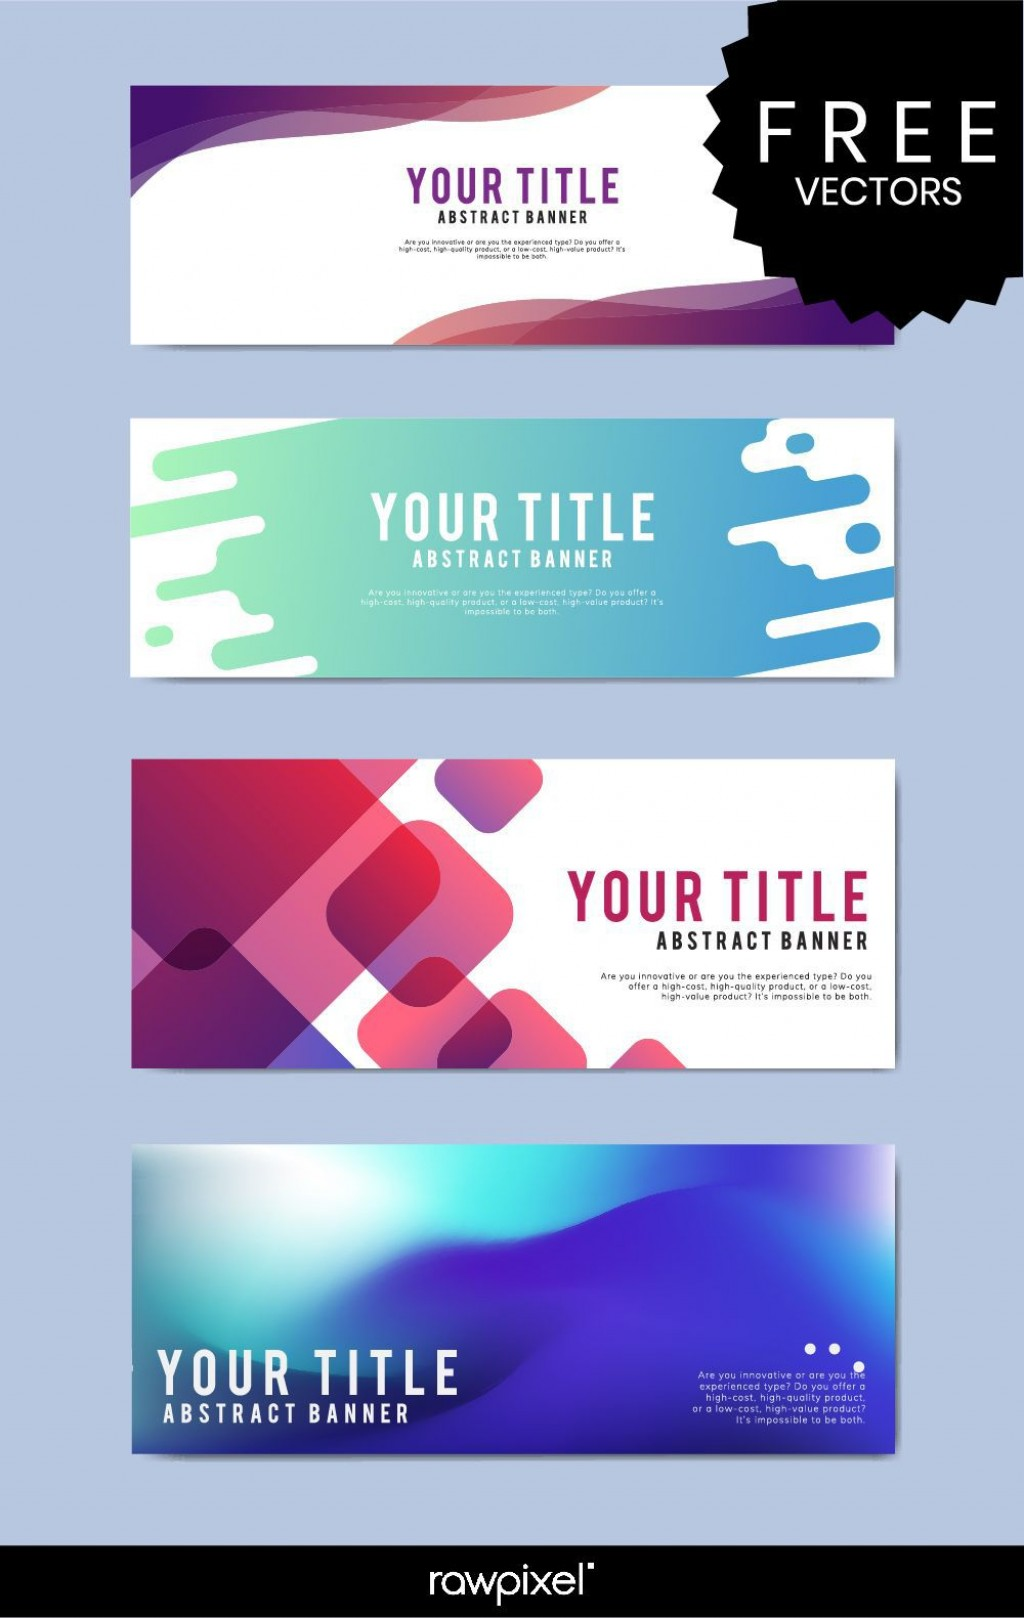 005 Staggering Free Graphic Design Template Idea  Templates For Flyer Powerpoint Download T-shirtLarge